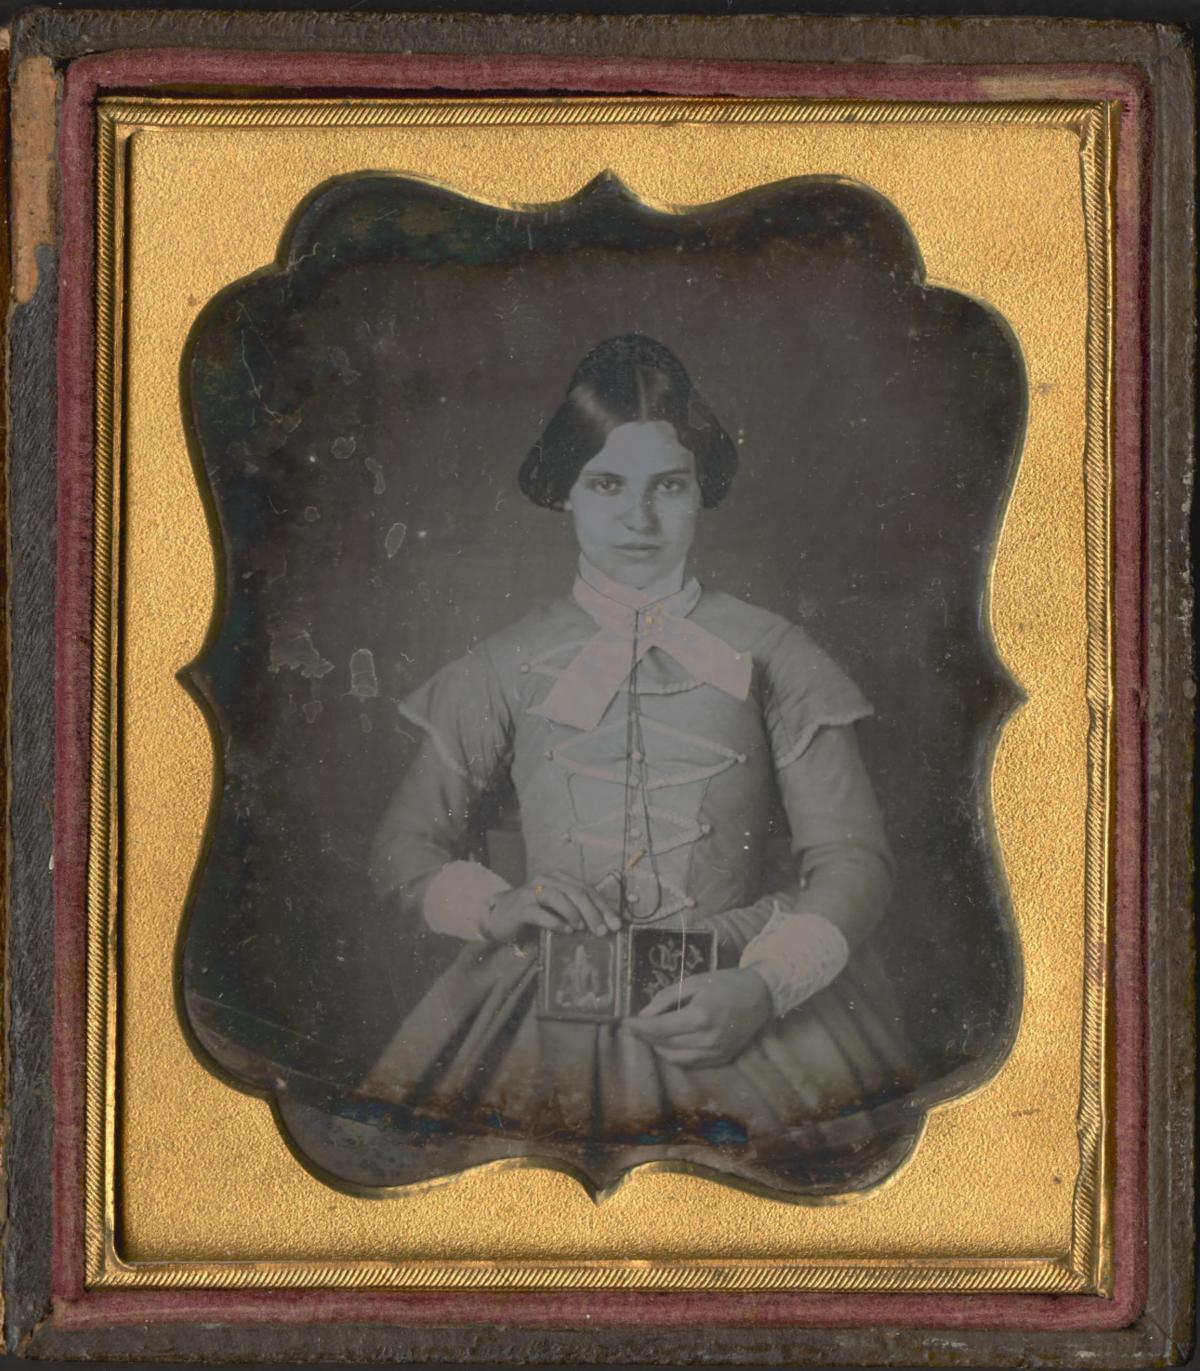 Young woman holding cased daguerreotype portrait. / May 9 1851 Taken By S. C. Smith, Fentonville, Mich.